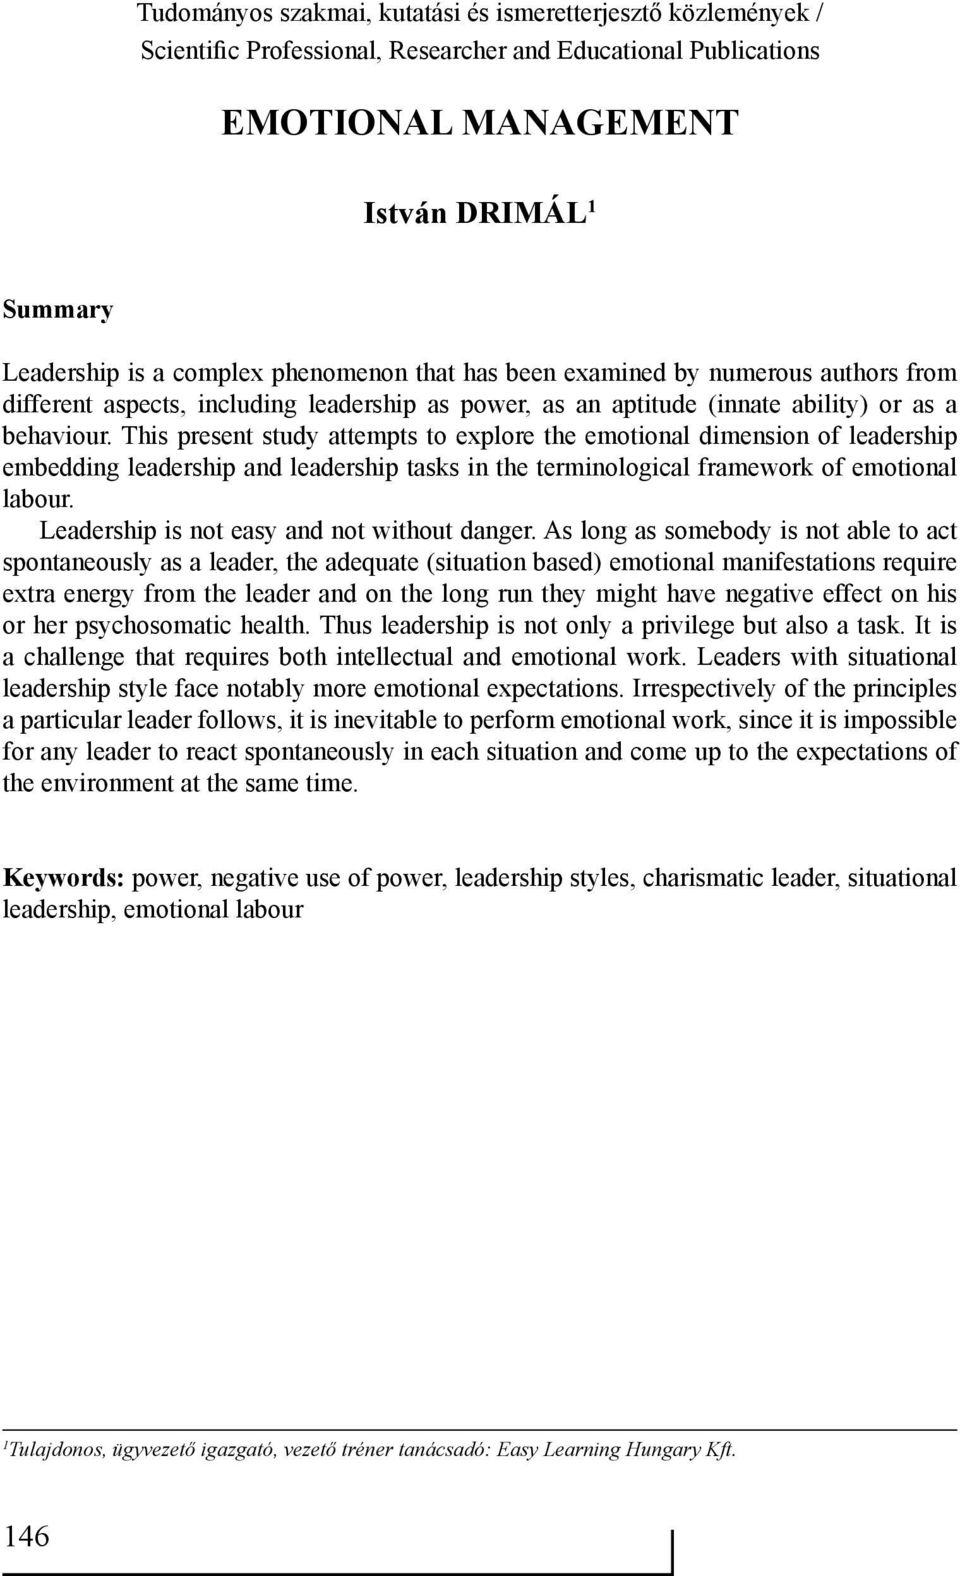 This present study attempts to explore the emotional dimension of leadership embedding leadership and leadership tasks in the terminological framework of emotional labour.